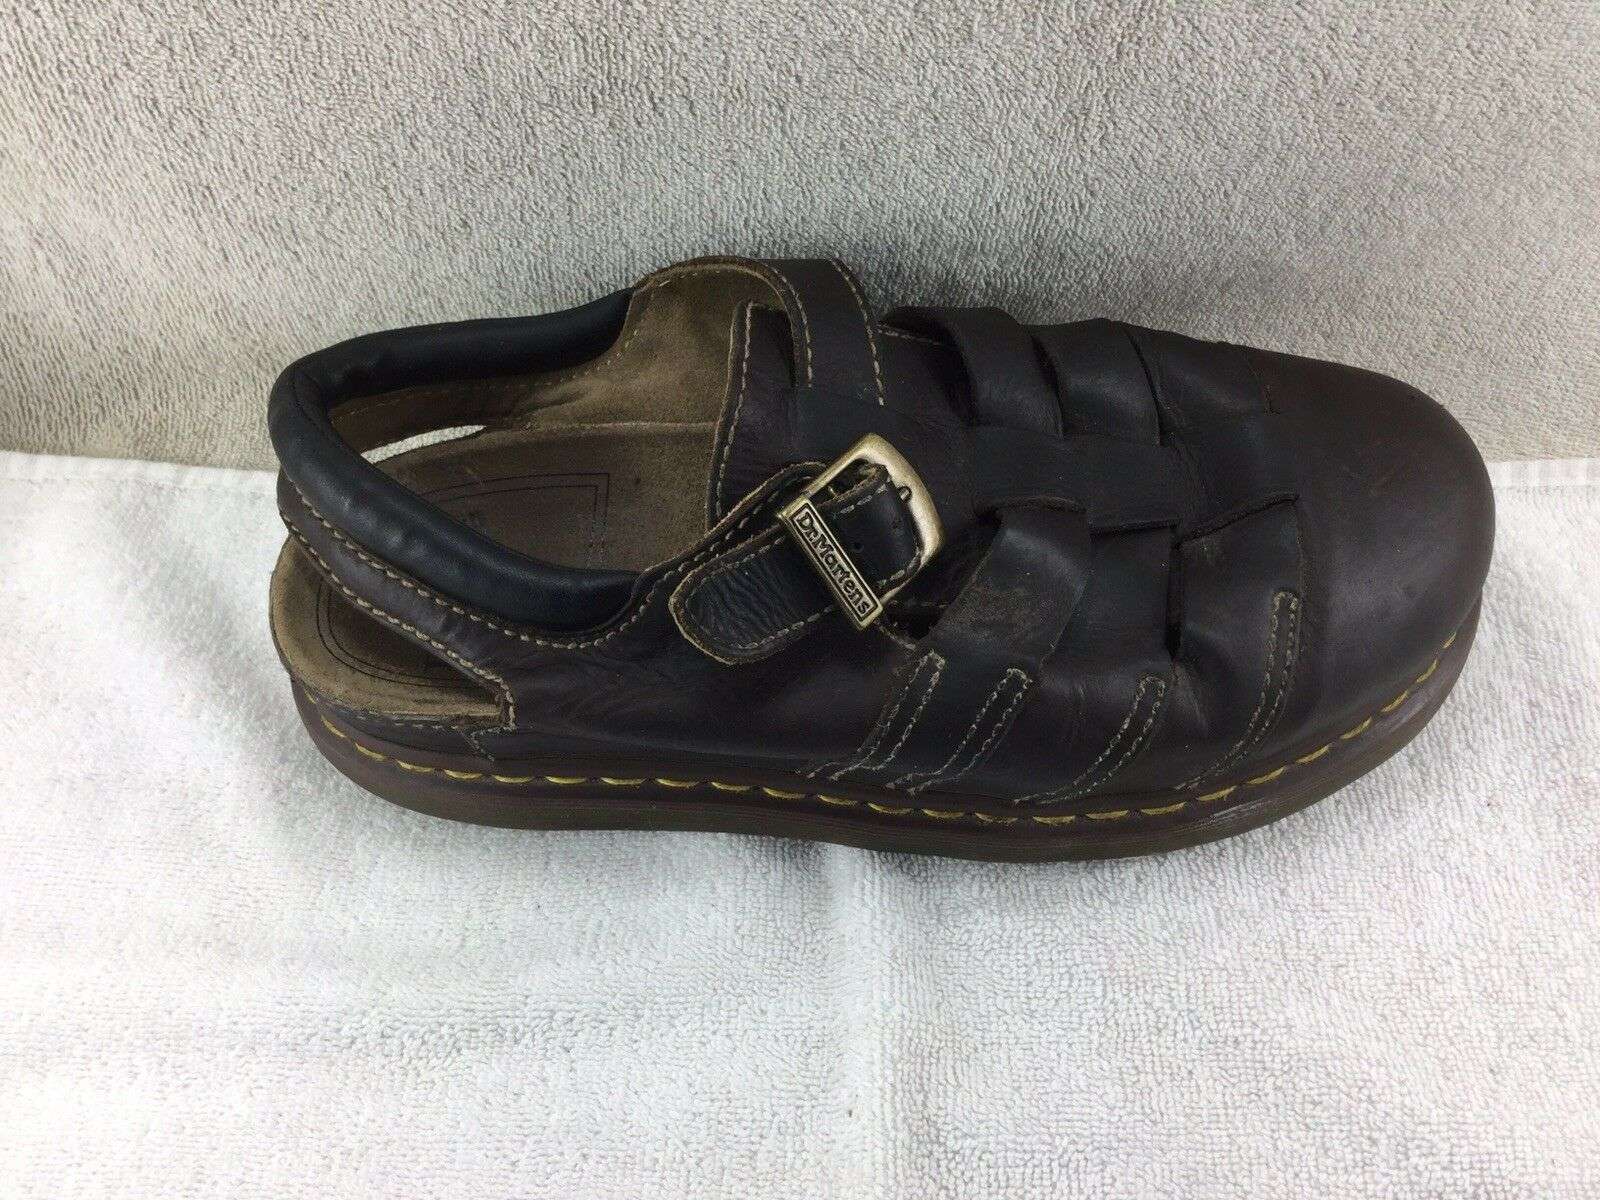 Dr. Doc Martens Brown Buckle Fisherman Style Sandals Mens Size 12M